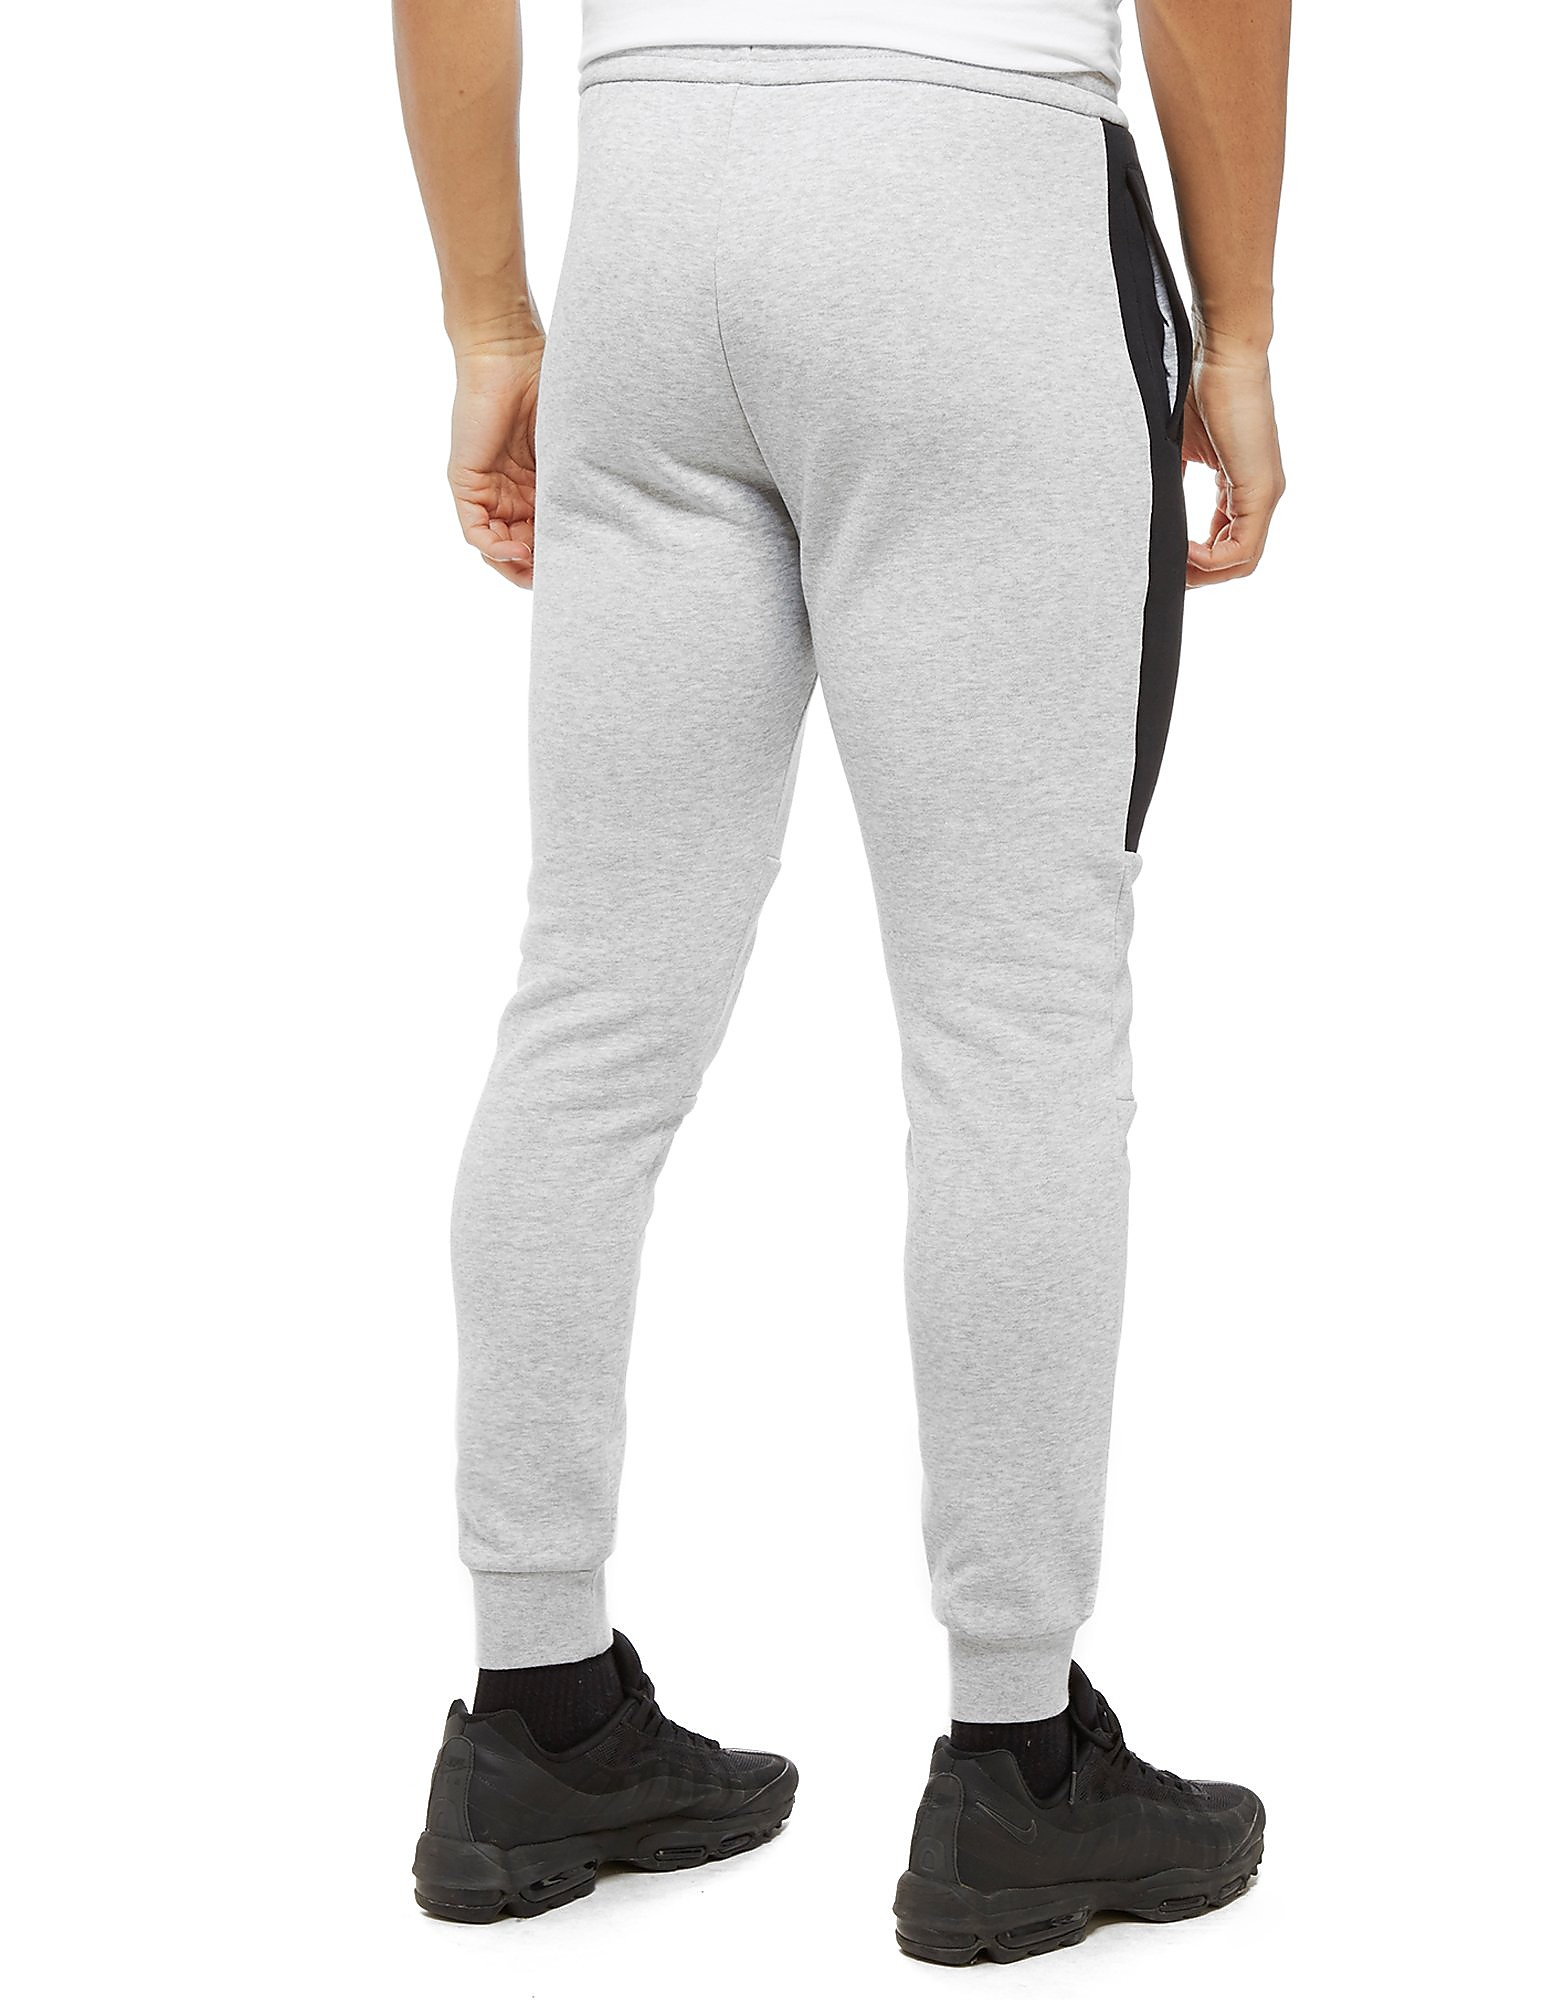 Emporio Armani EA7 Side Panel Pants